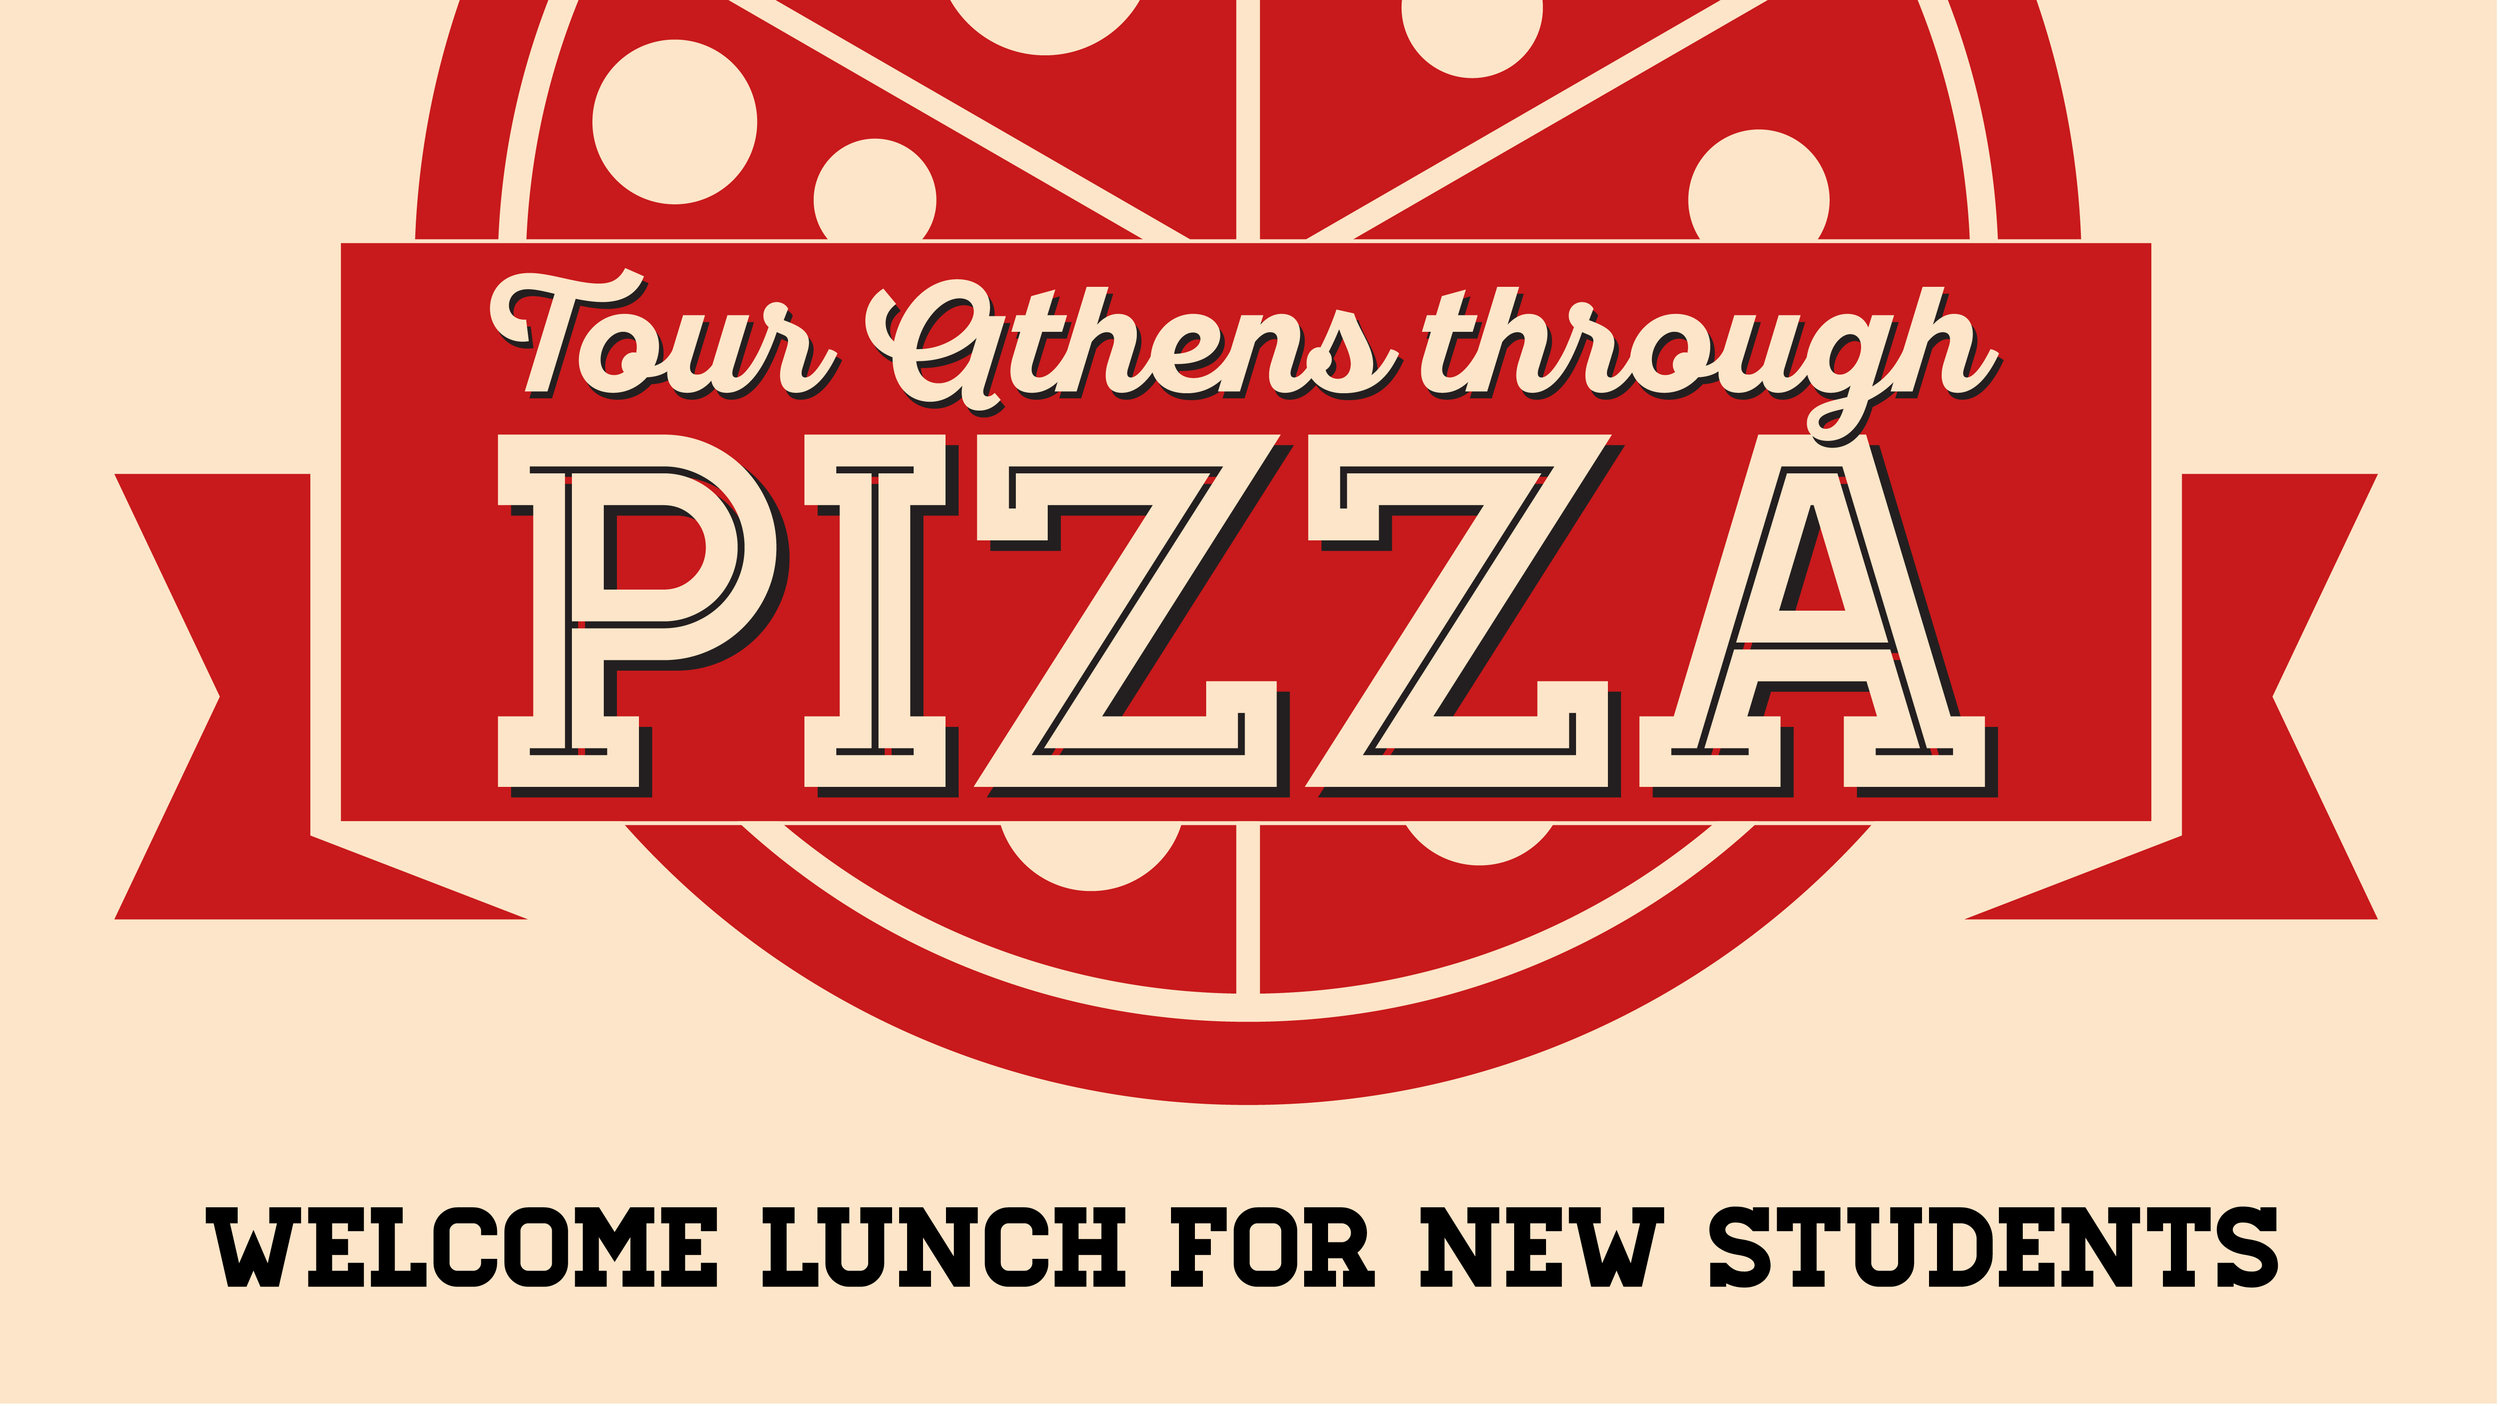 A promotional graphic for a welcome lunch.